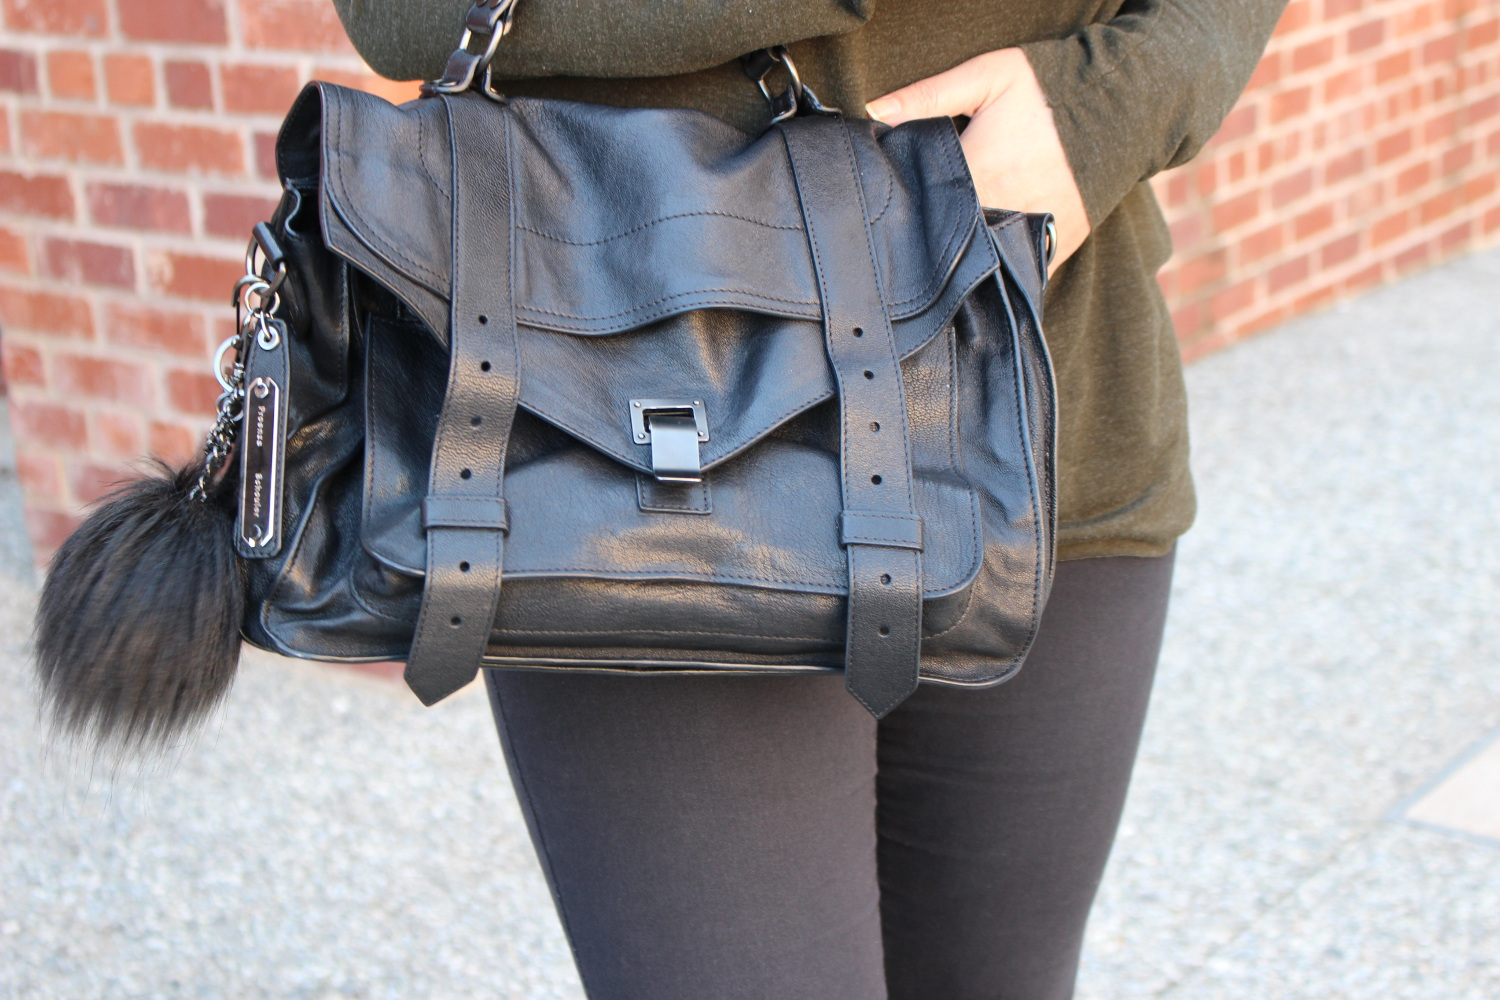 sf blogger - proenza schouler ps1 satchel